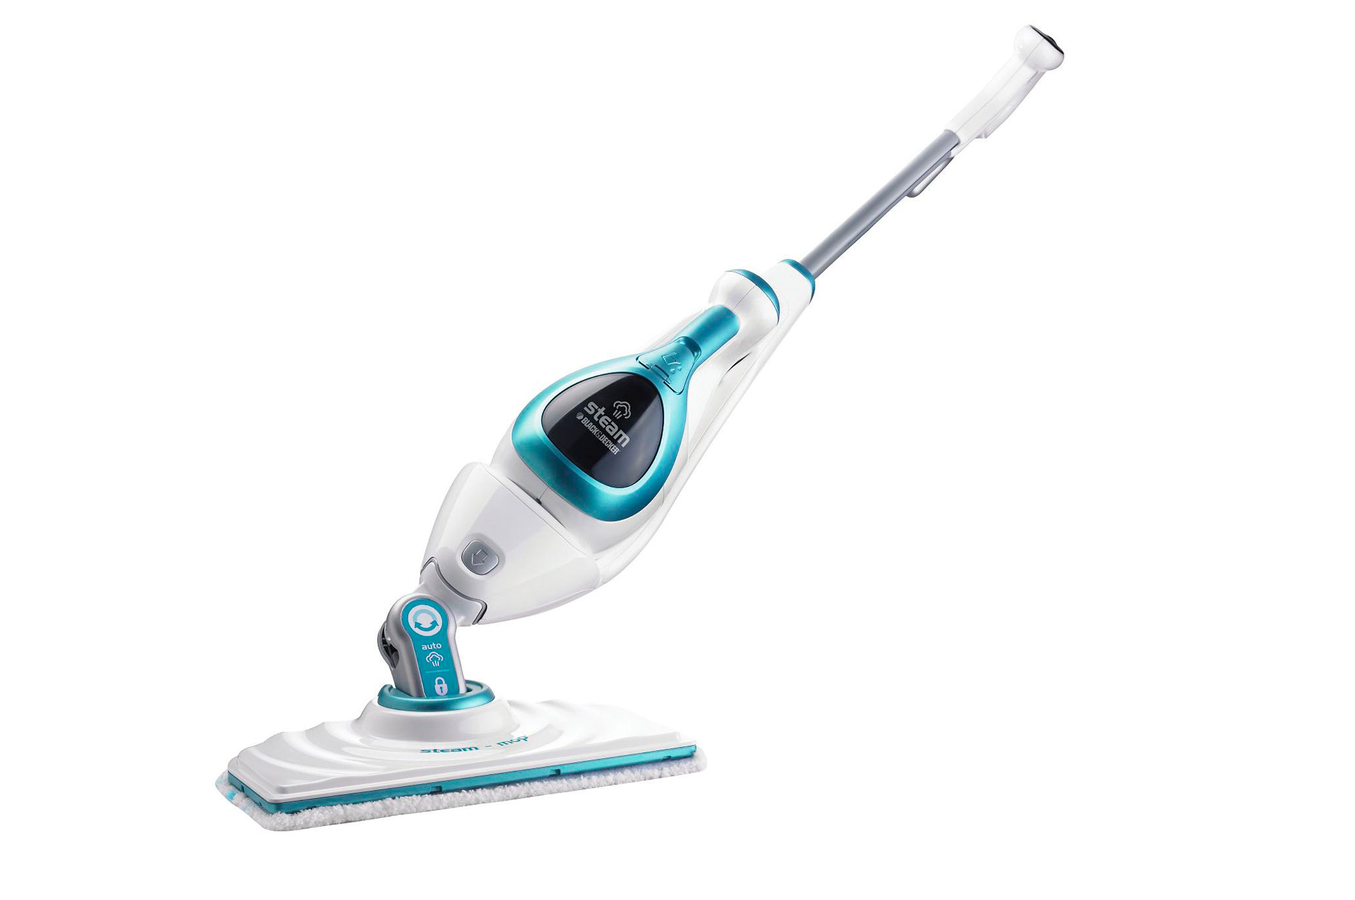 Nettoyeur vapeur black decker fsmh1621 steam mop steammop 3721345 darty - Aspirateur balai black et decker ...